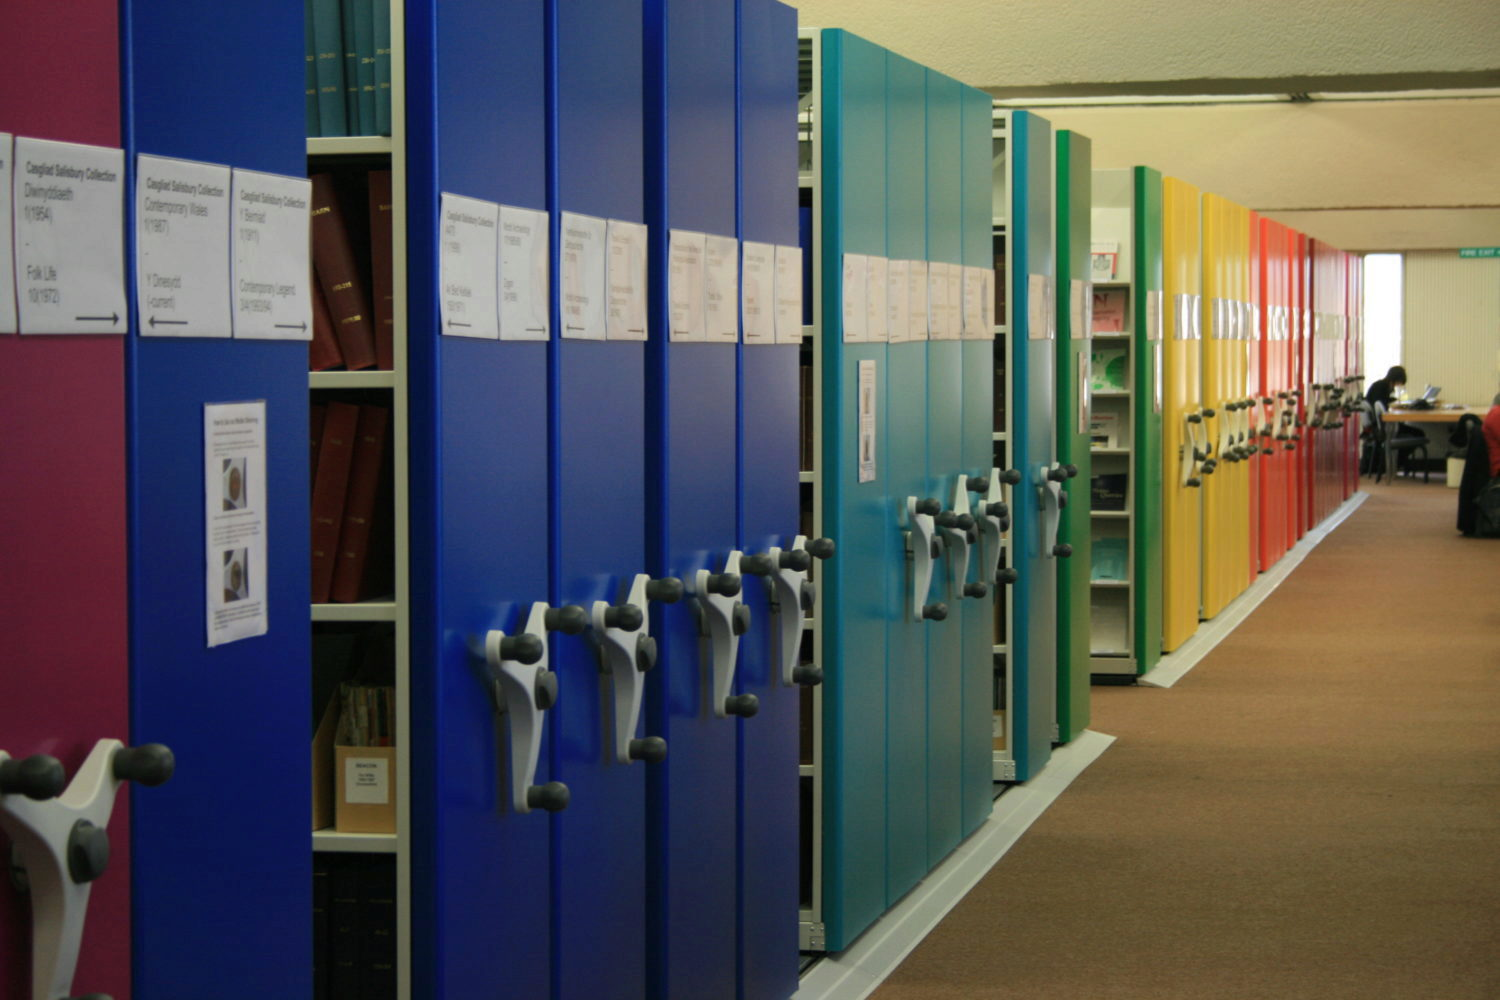 Mobile storage is a high-density storage arrangement. Call us for a free site survey and quote.